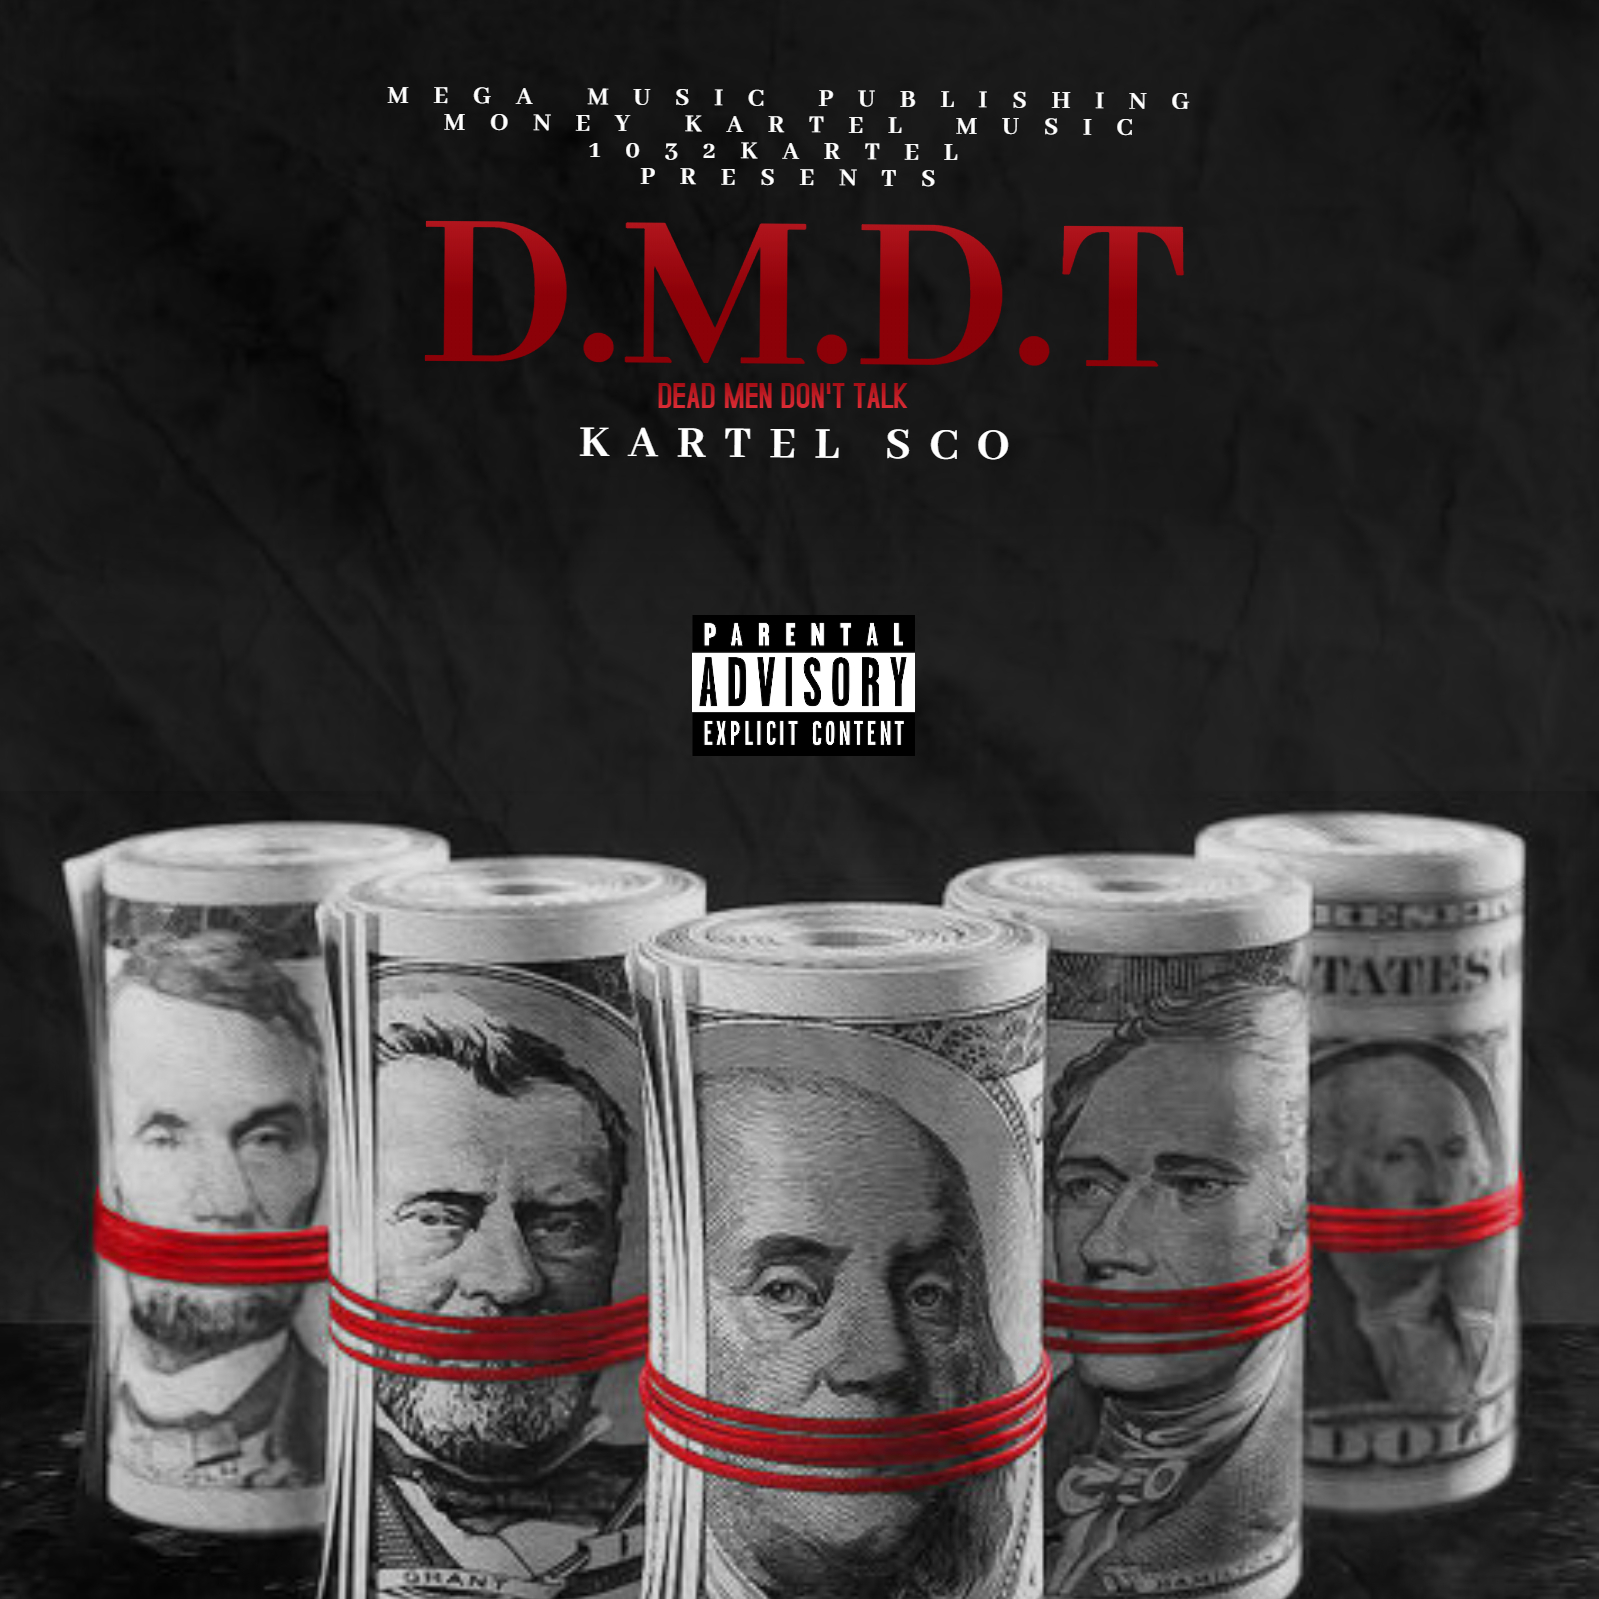 Kartel Sco announces 'D.M.D.T.' June 2020 mixtape